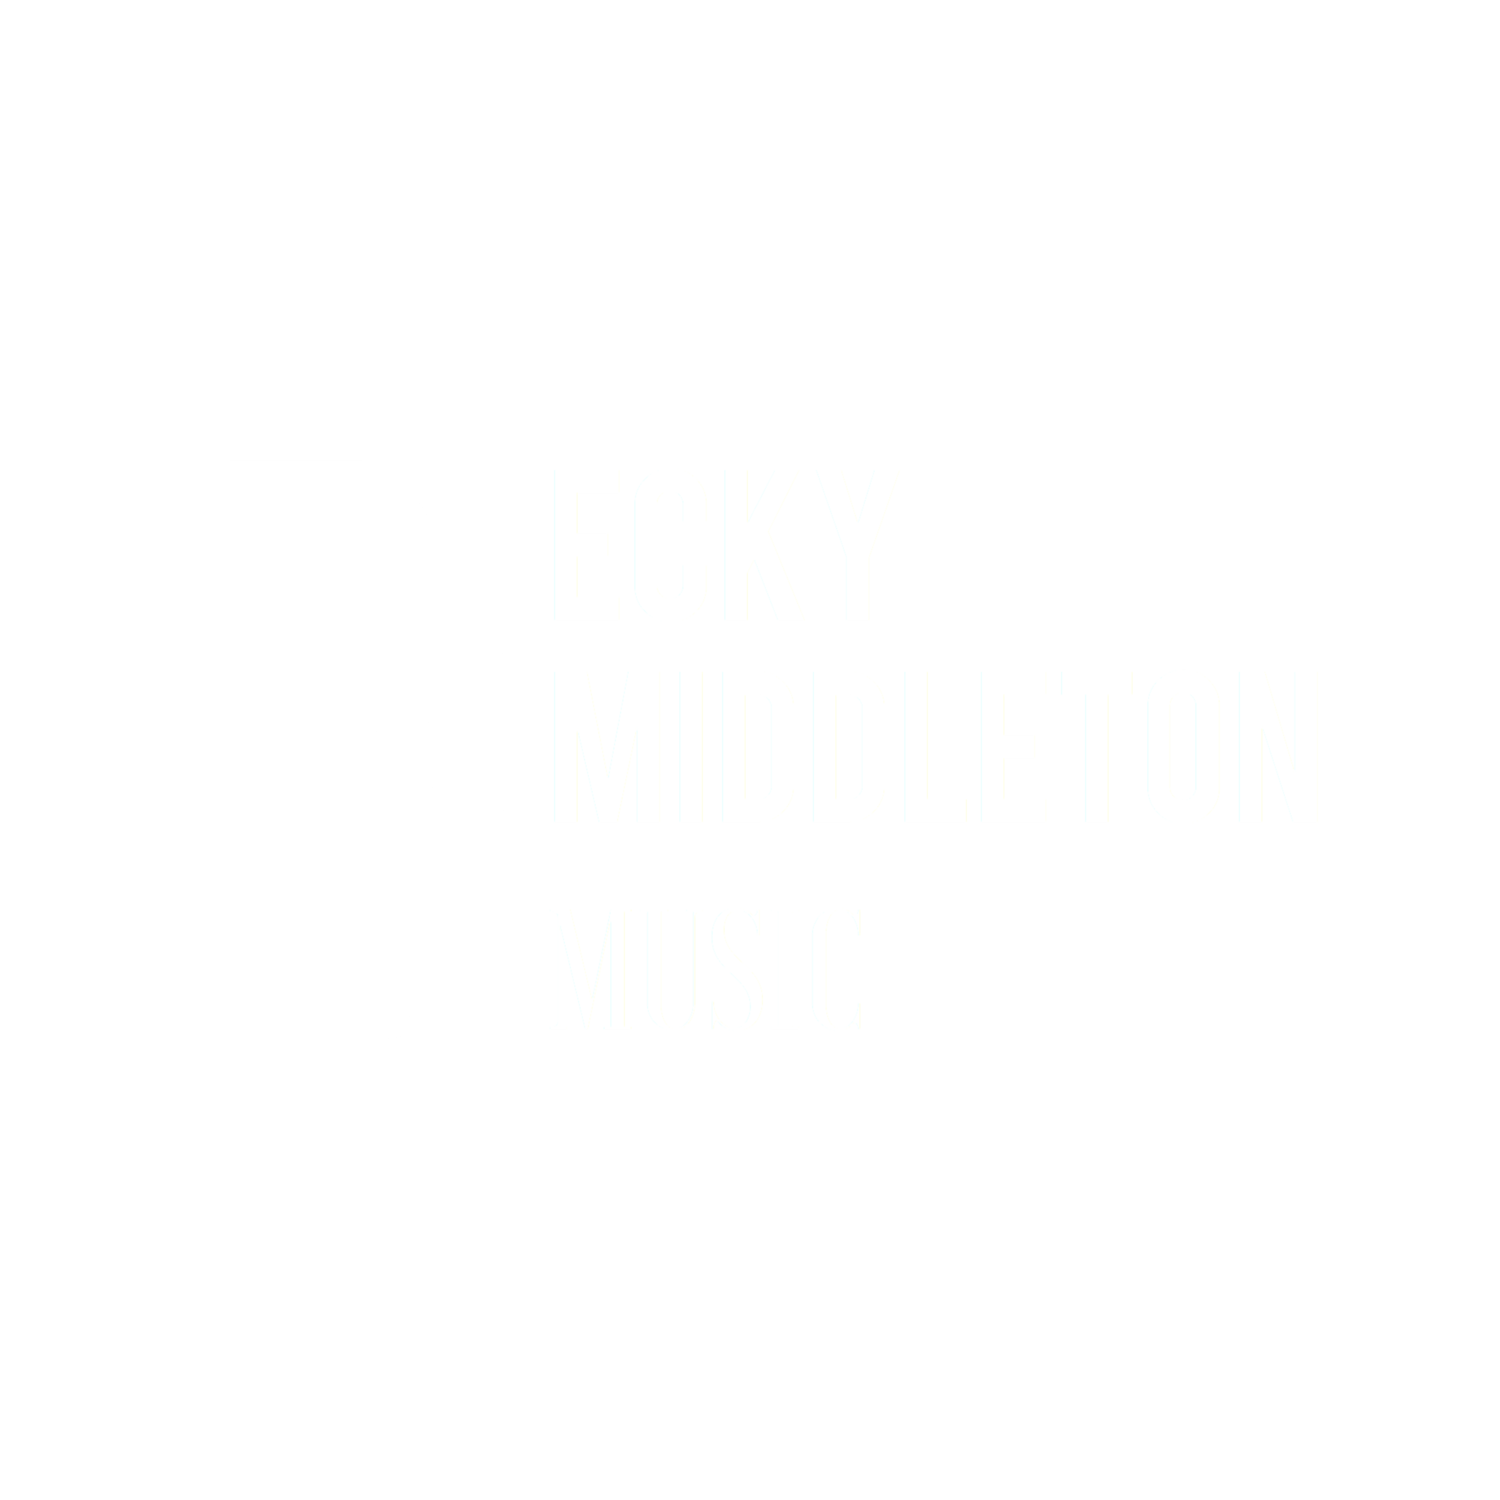 Becky Middleton Music